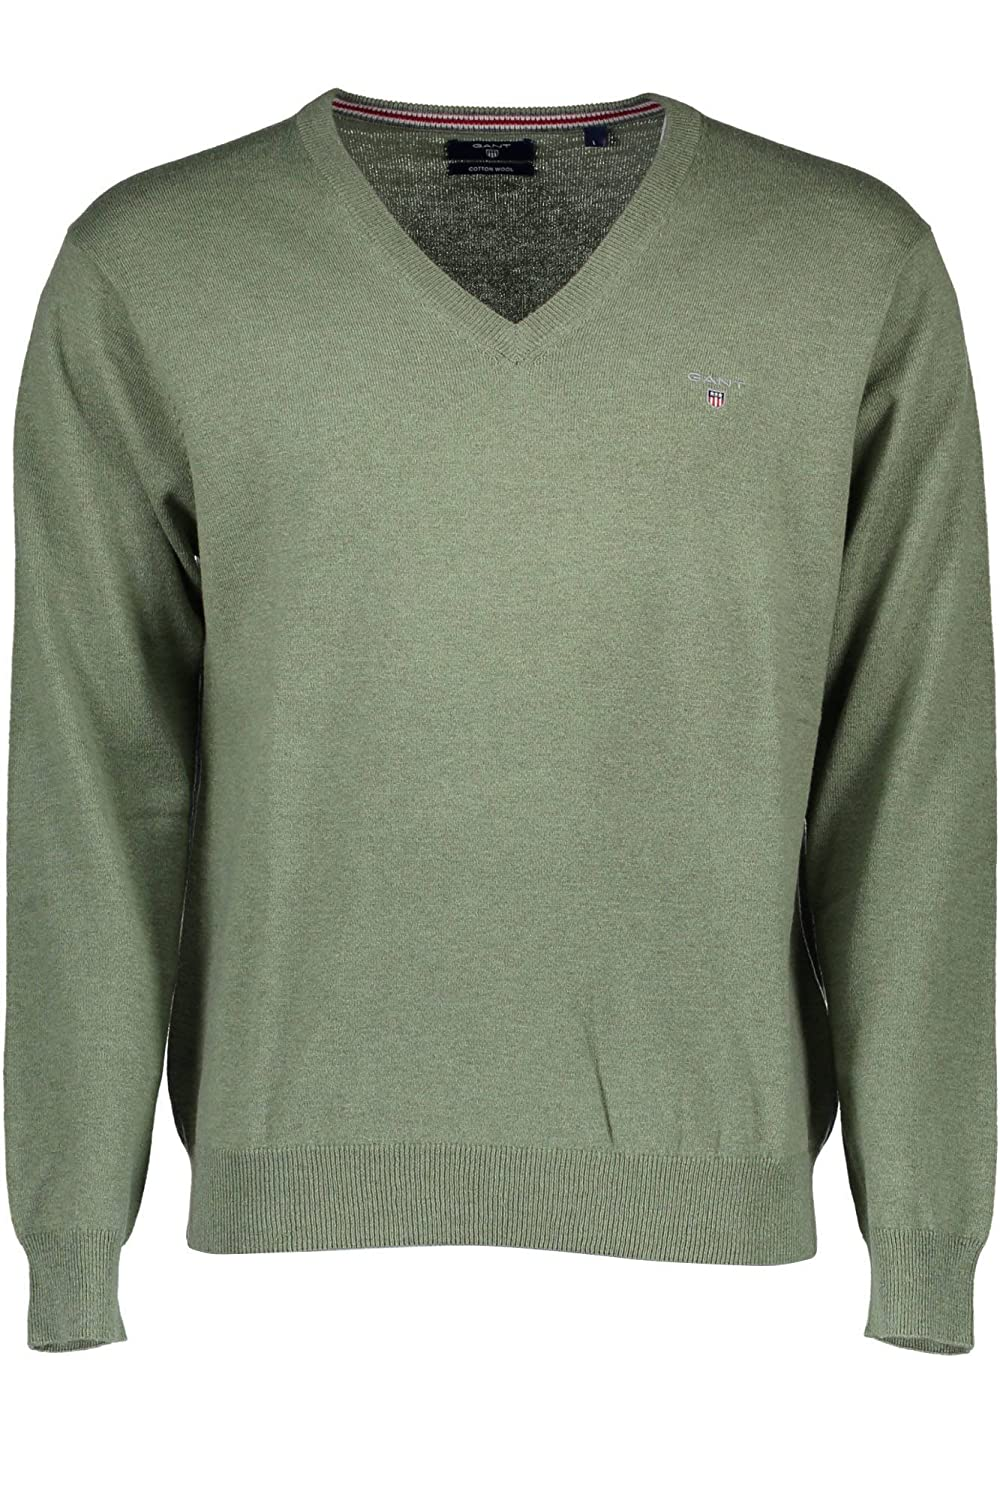 Gant Men's Cotton Wool Long Sleeve V-Neck Jumper 83102